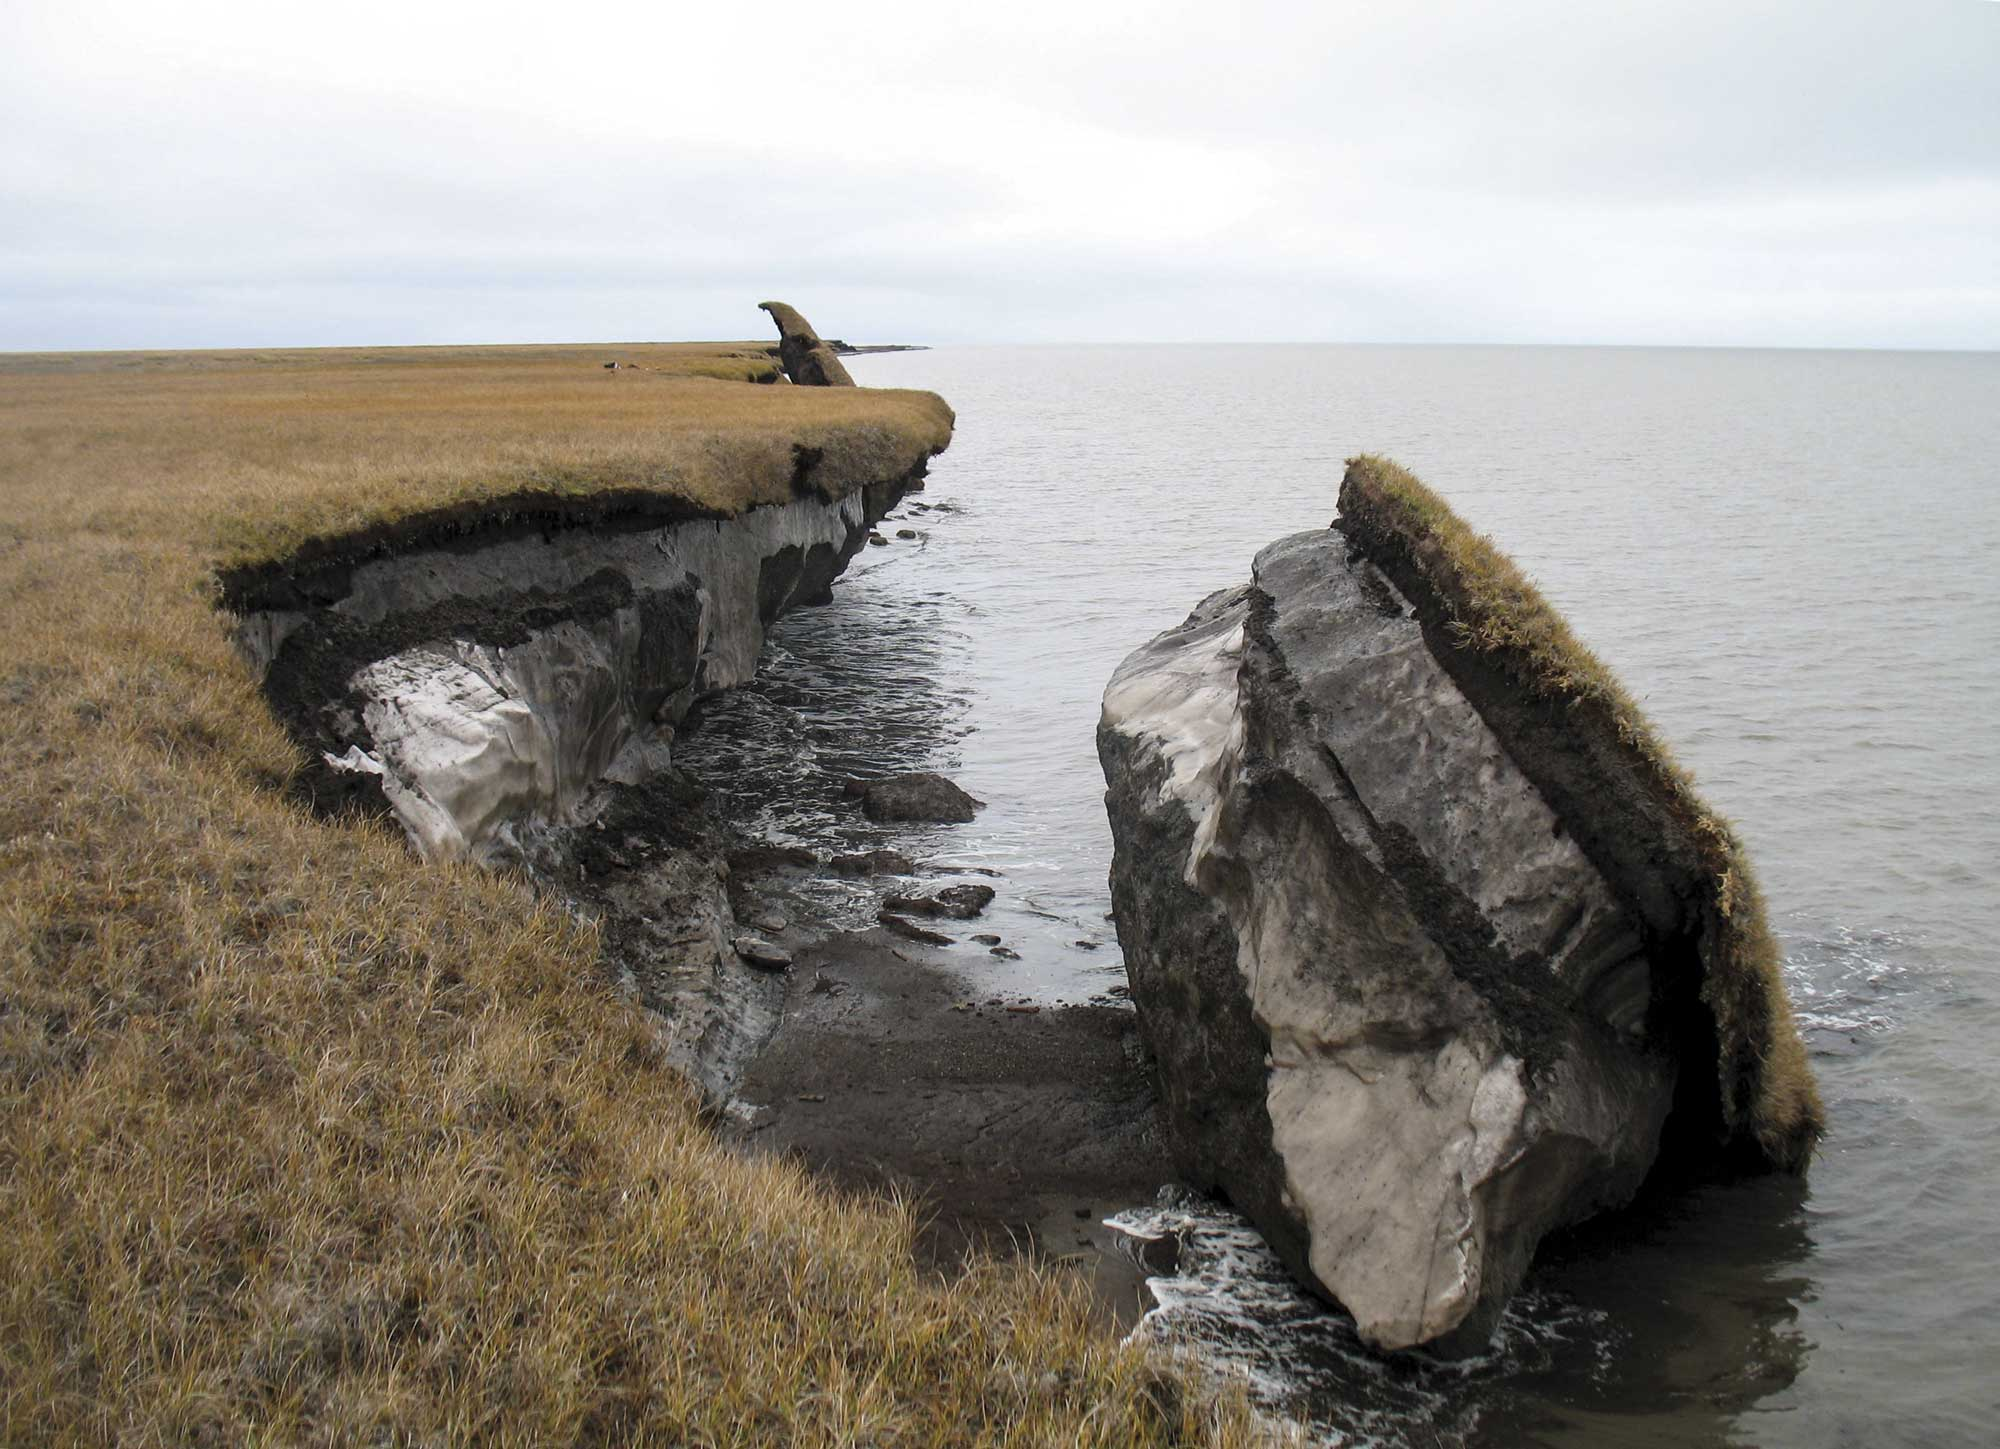 Thawing permafrost accelerates erosion. Photo: USGS